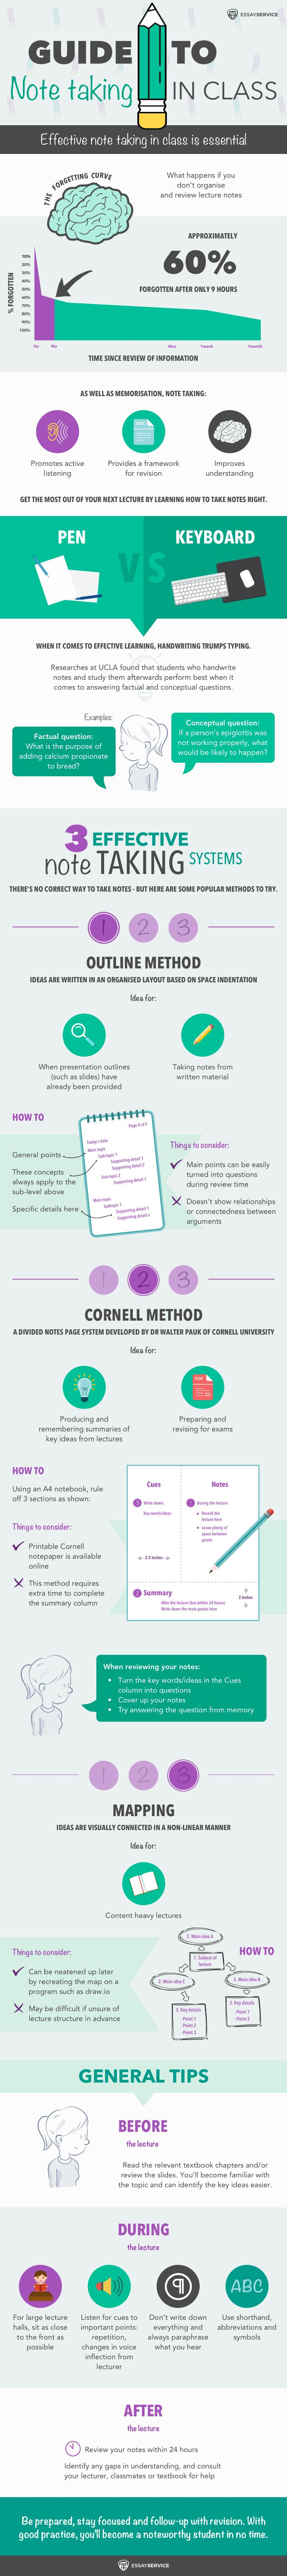 Some of Excellent Note-taking Tips for Students